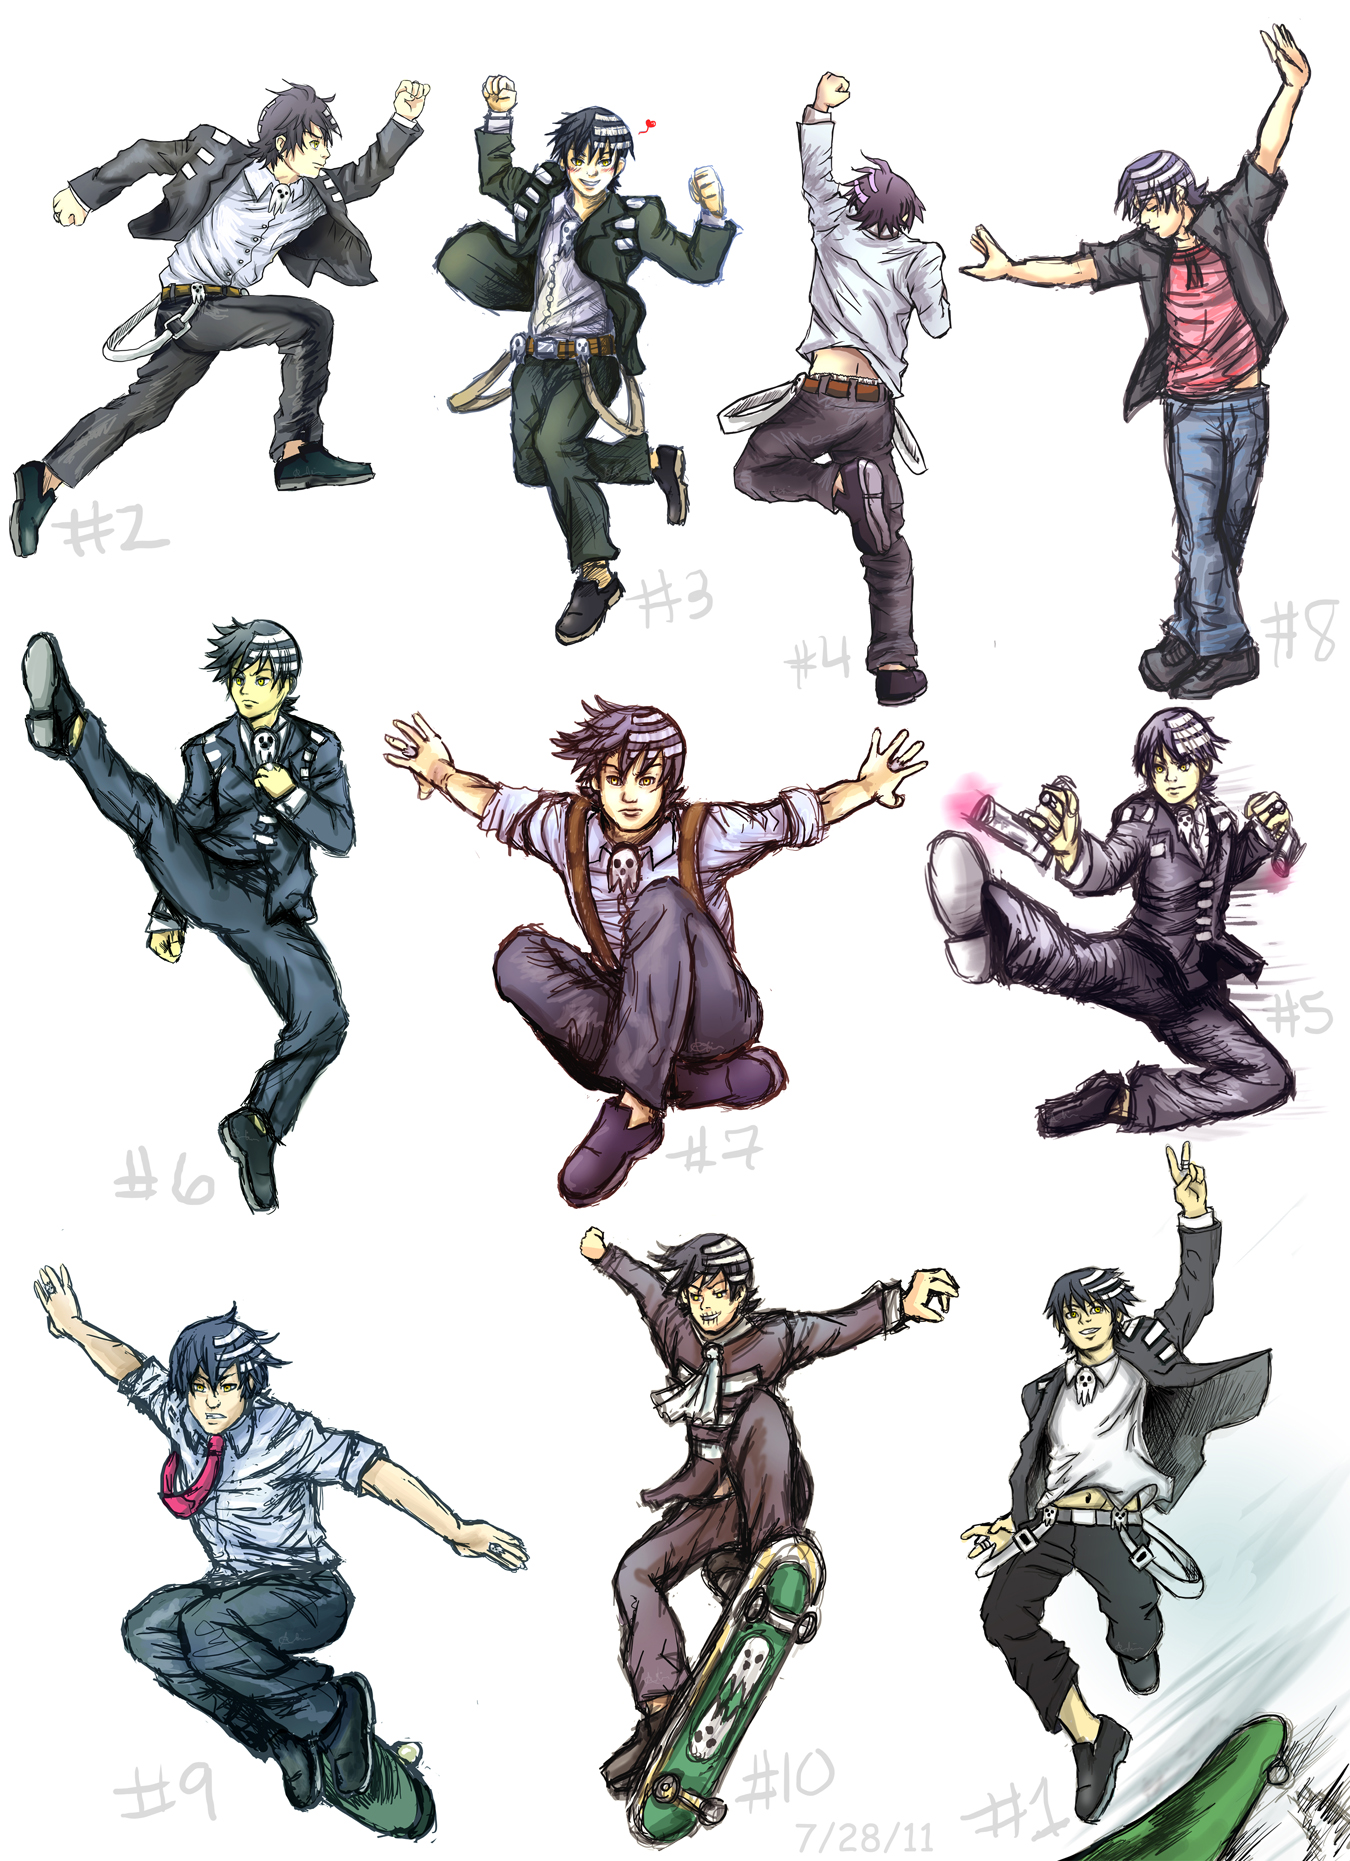 Dtk Action Poses Collage1 By Rinkuchan27 On Deviantart Image of anime your prince awaits have a sweet dream sleeping with. dtk action poses collage1 by